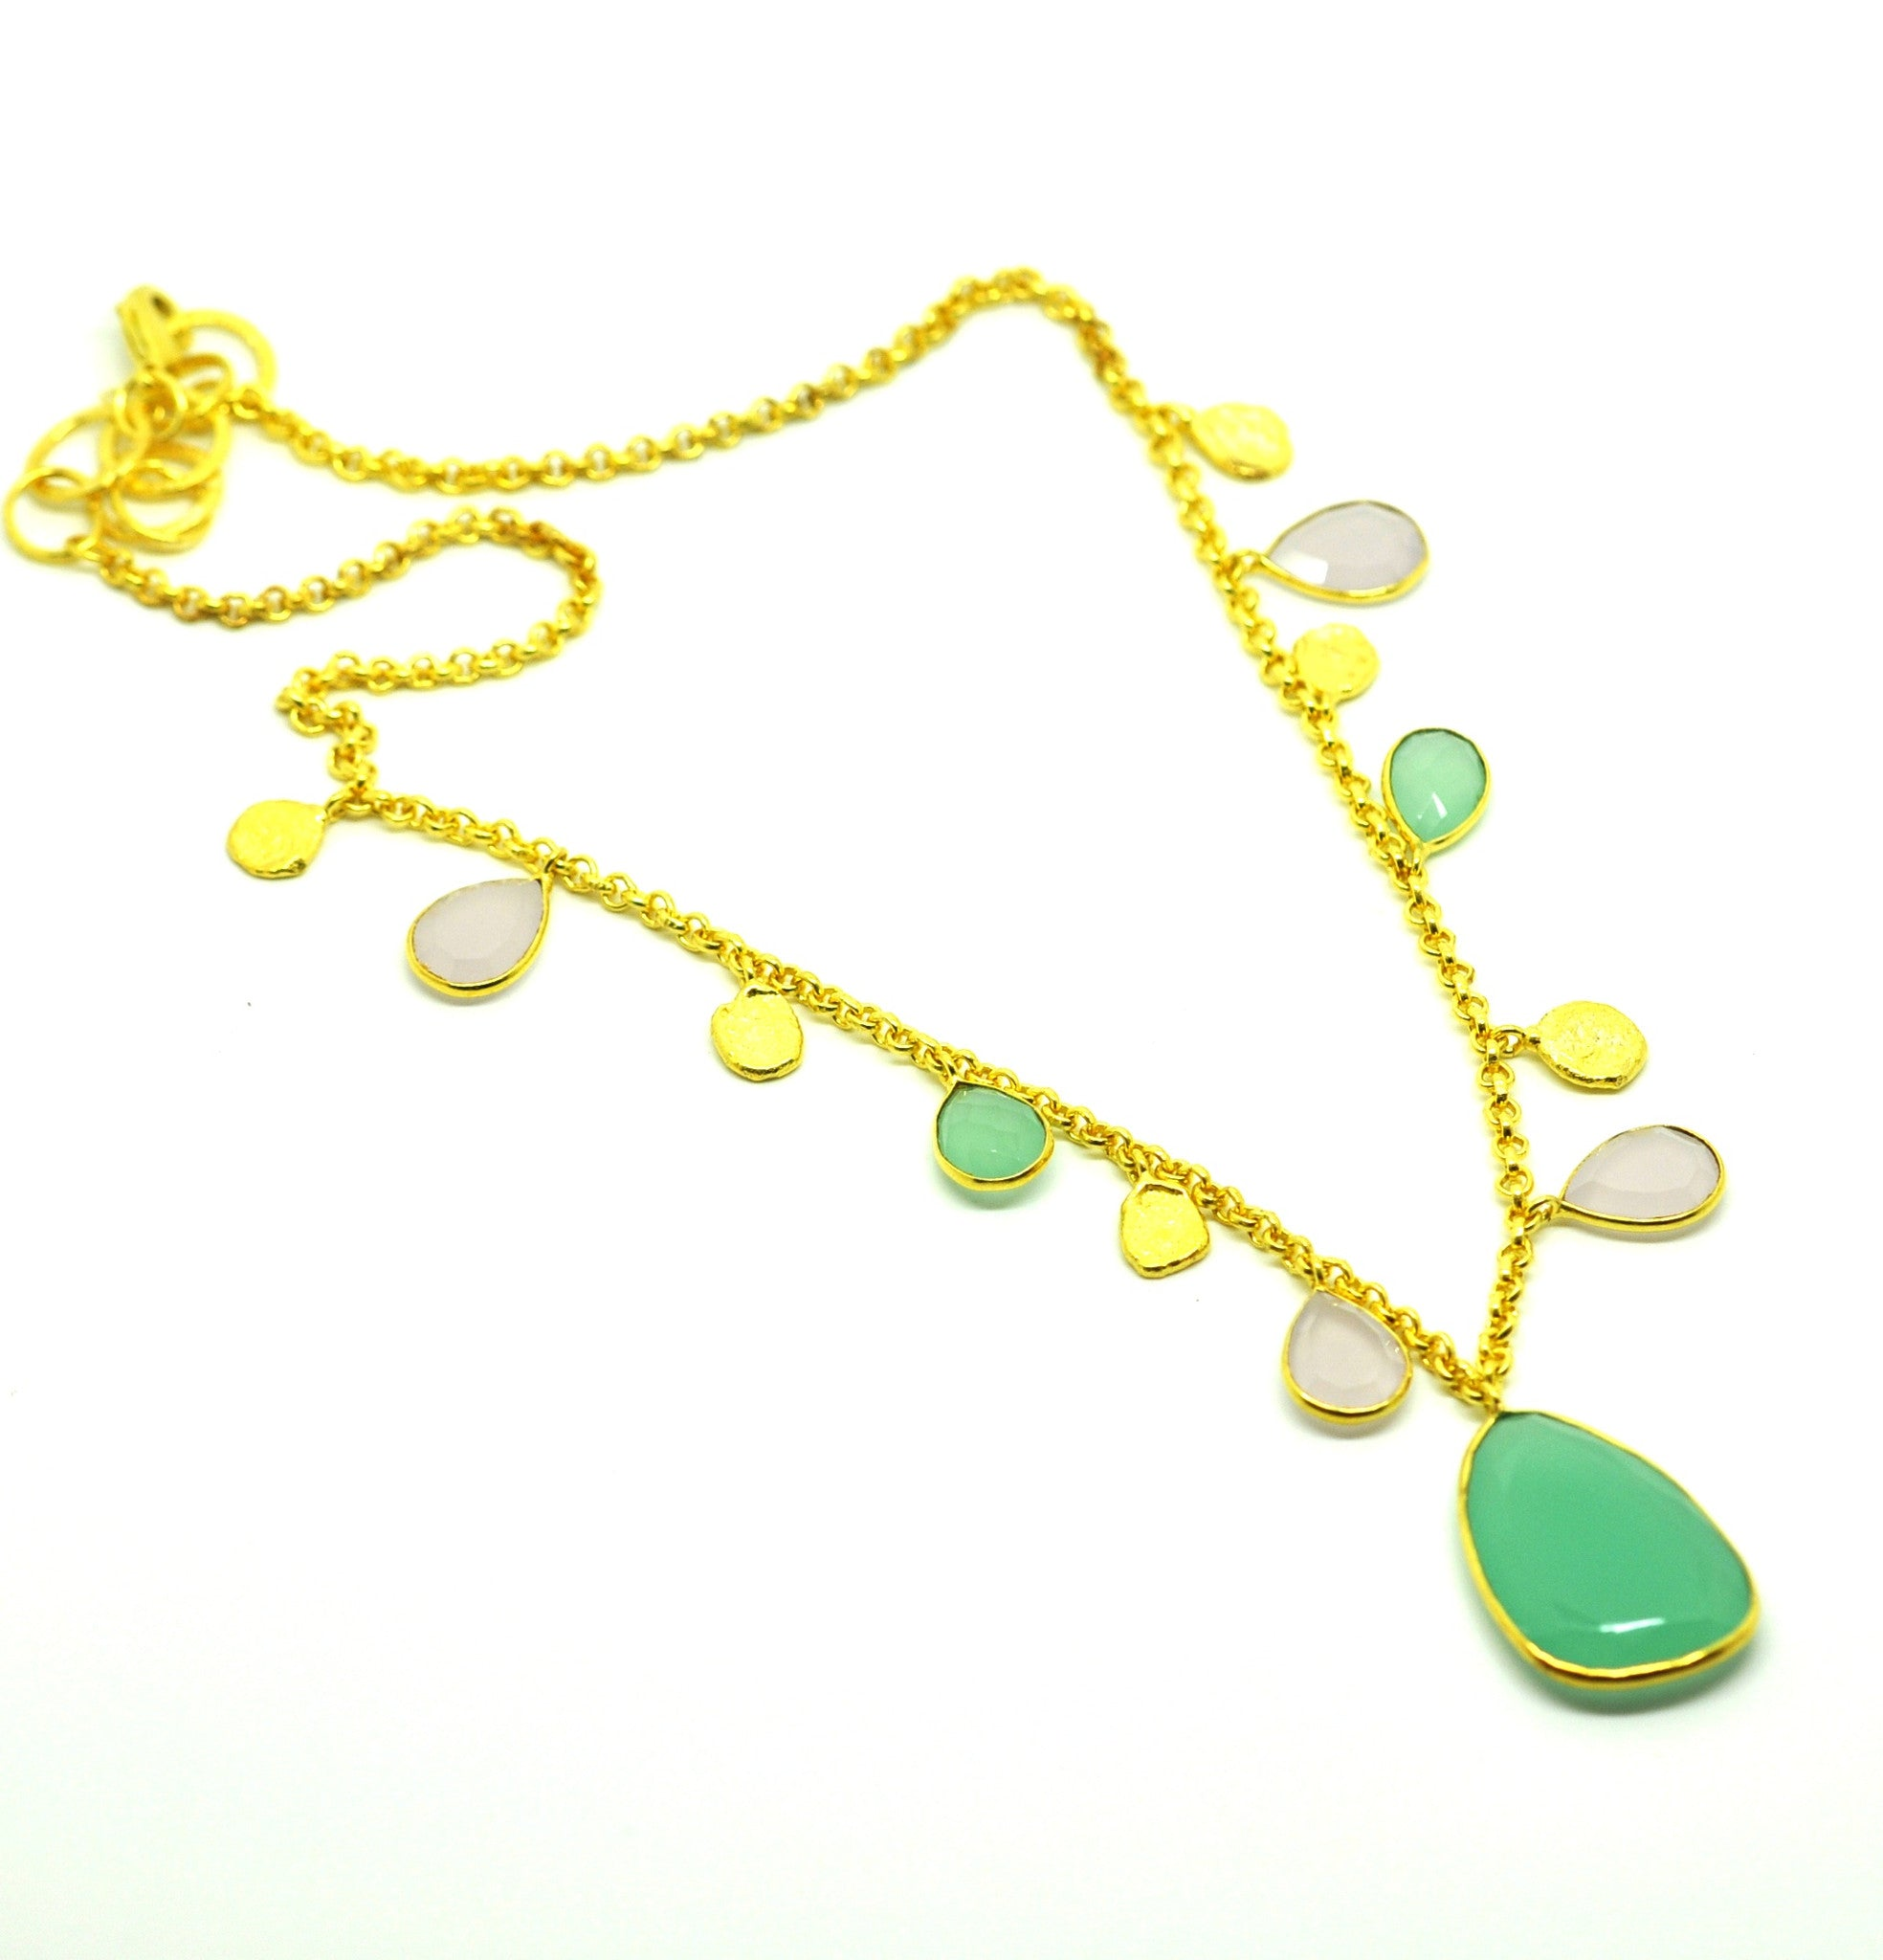 SOLD - ON SALE Chalcedony necklace (CLEARANCE)